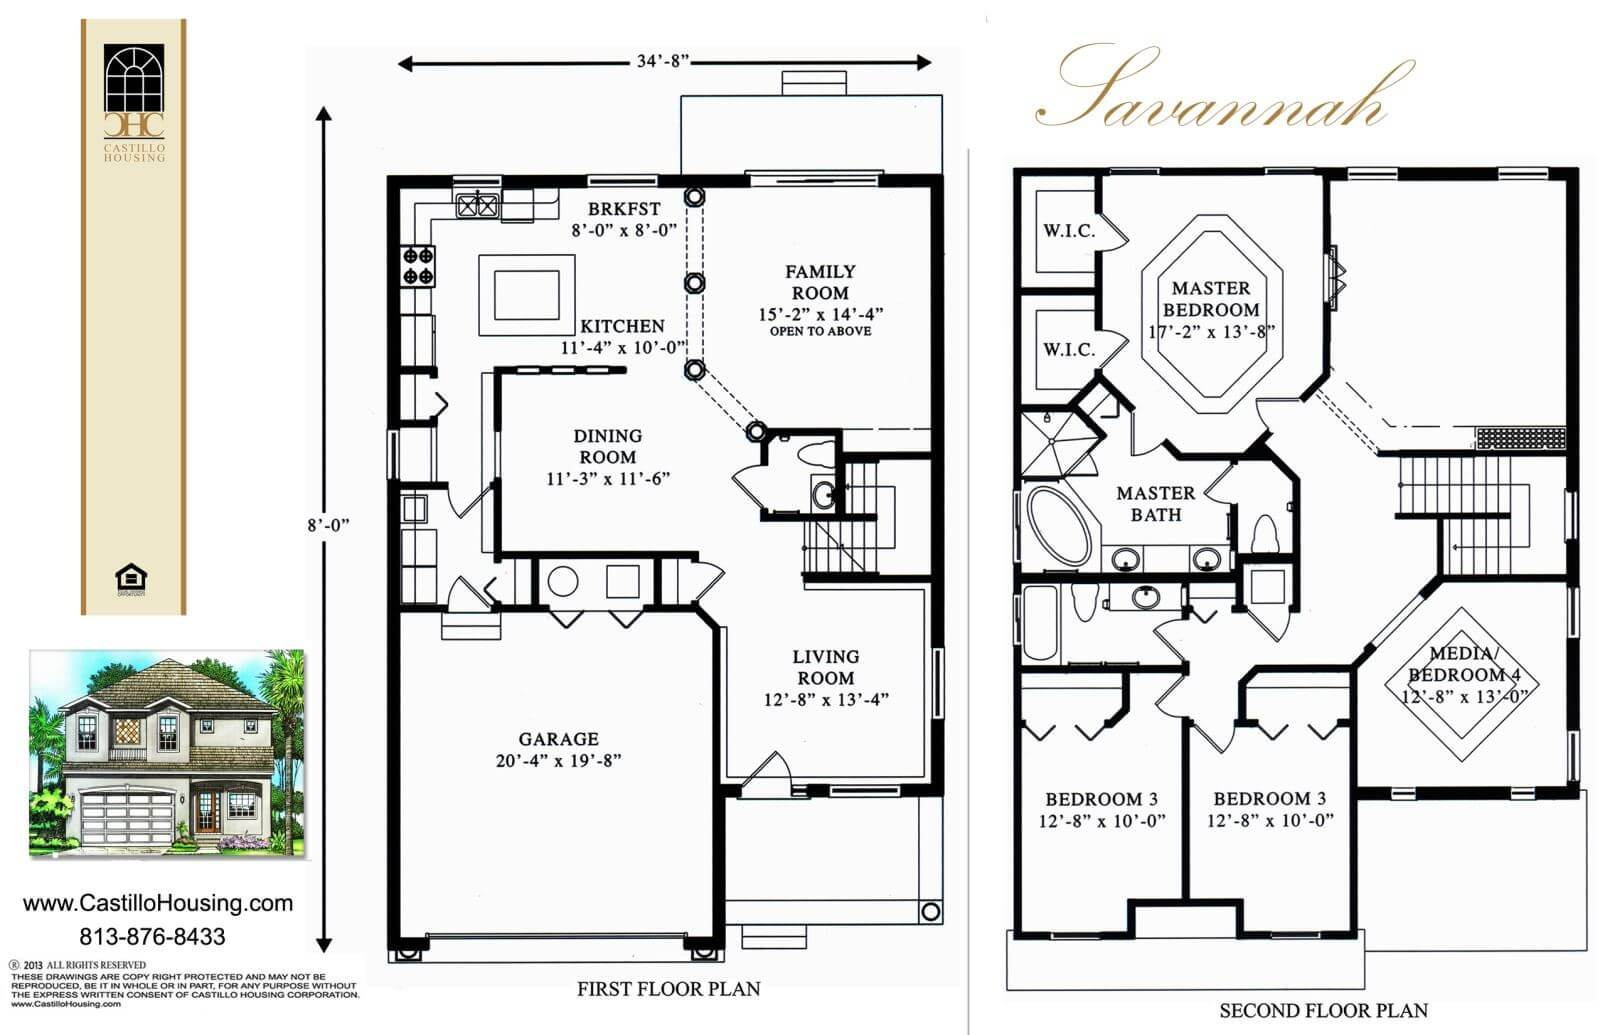 Floor Plans,2,001 SQ FT TO 2,500 SQ FT,1033